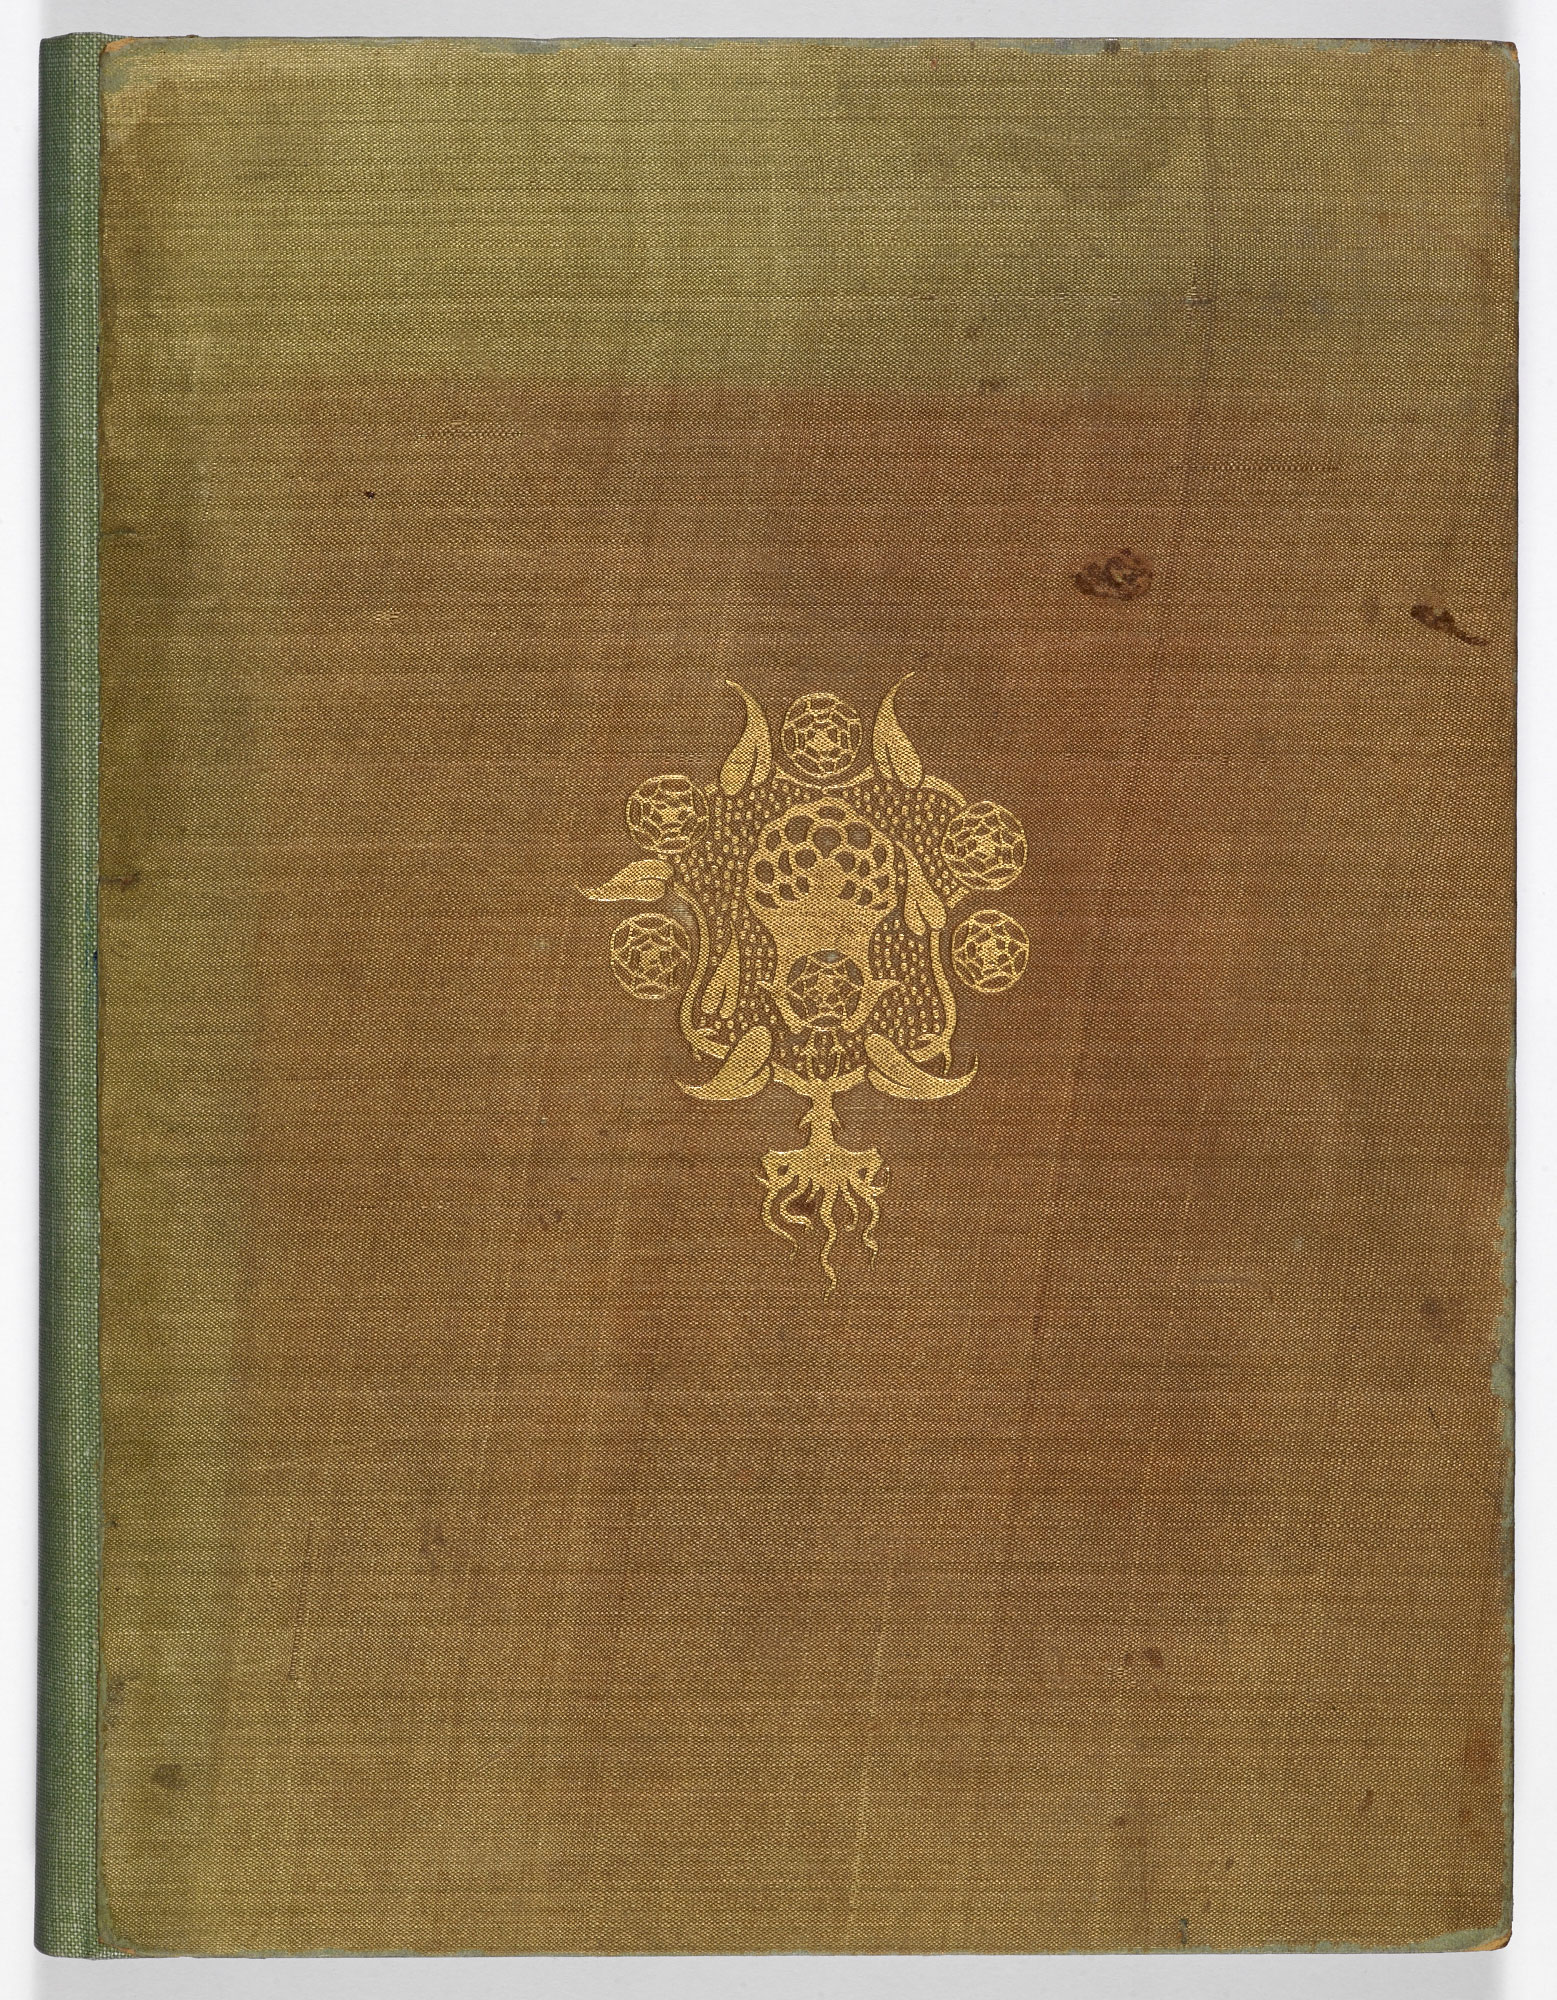 First edition of Oscar Wilde's Salomé